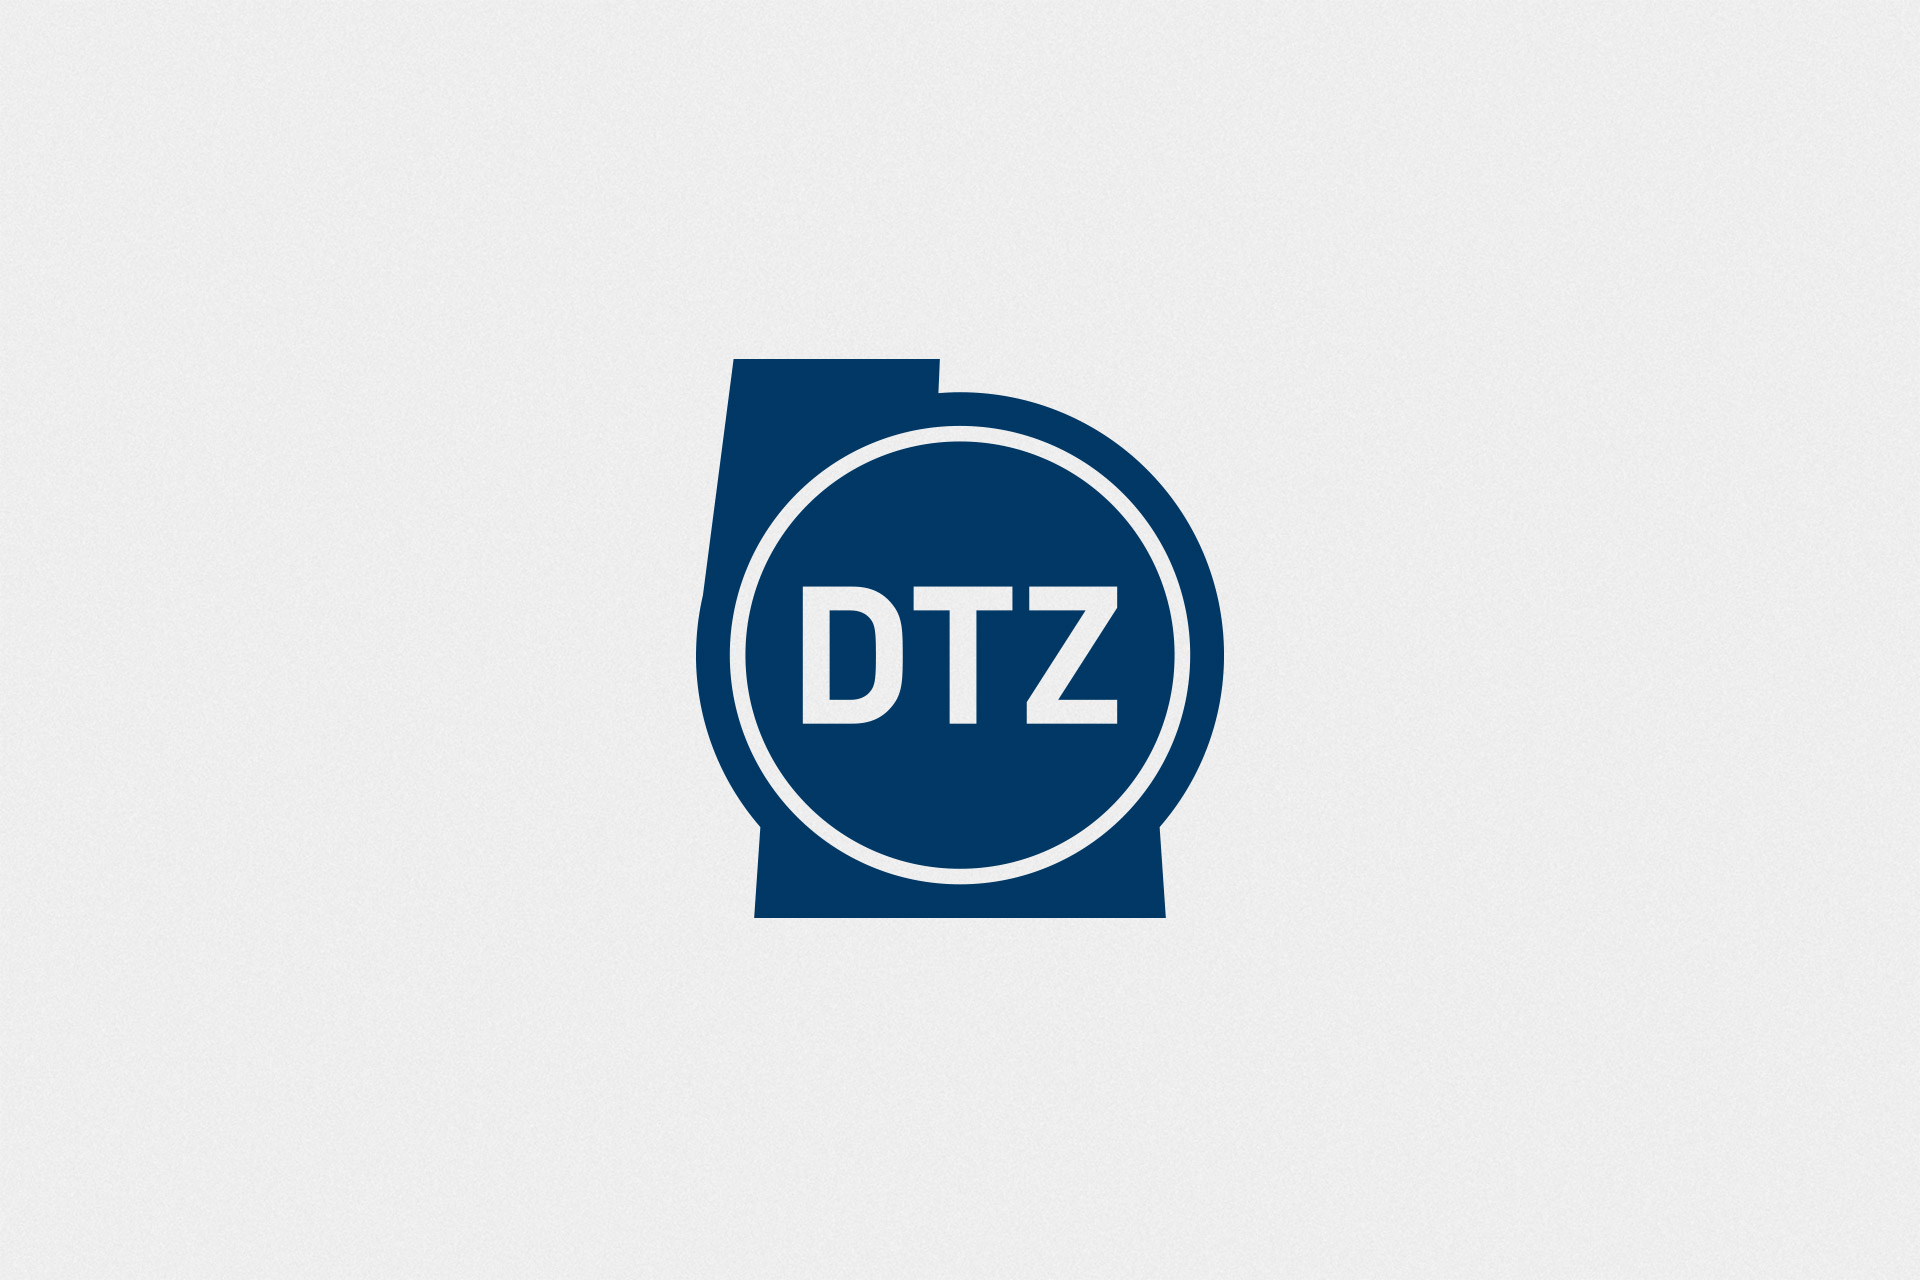 dtz-corporate-design logodesign